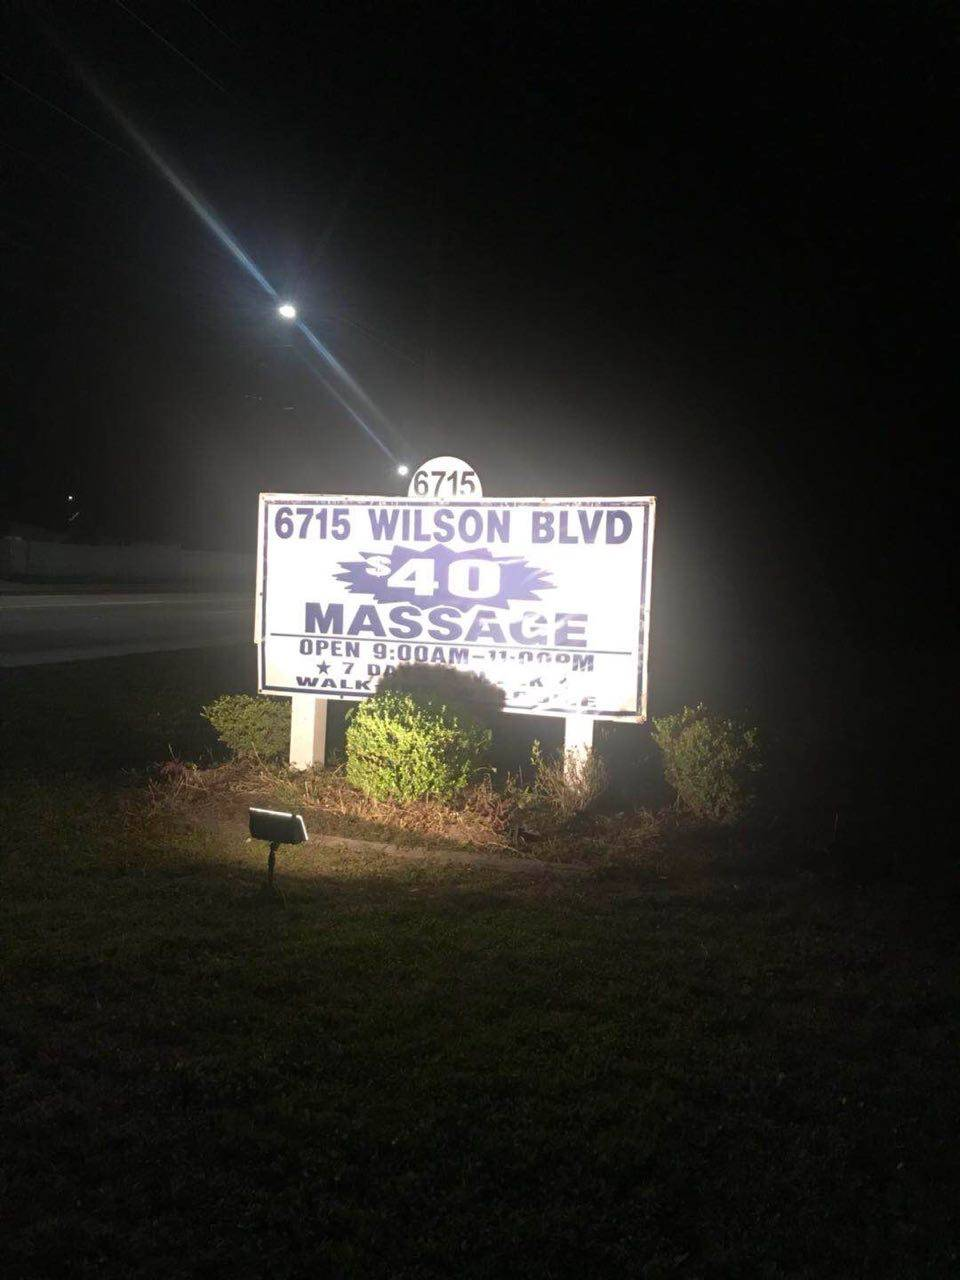 Asian Massage wilson - spa  | Photo 2 of 2 | Address: 6715 Wilson Blvd, Jacksonville, FL 32210, USA | Phone: (904) 438-5885